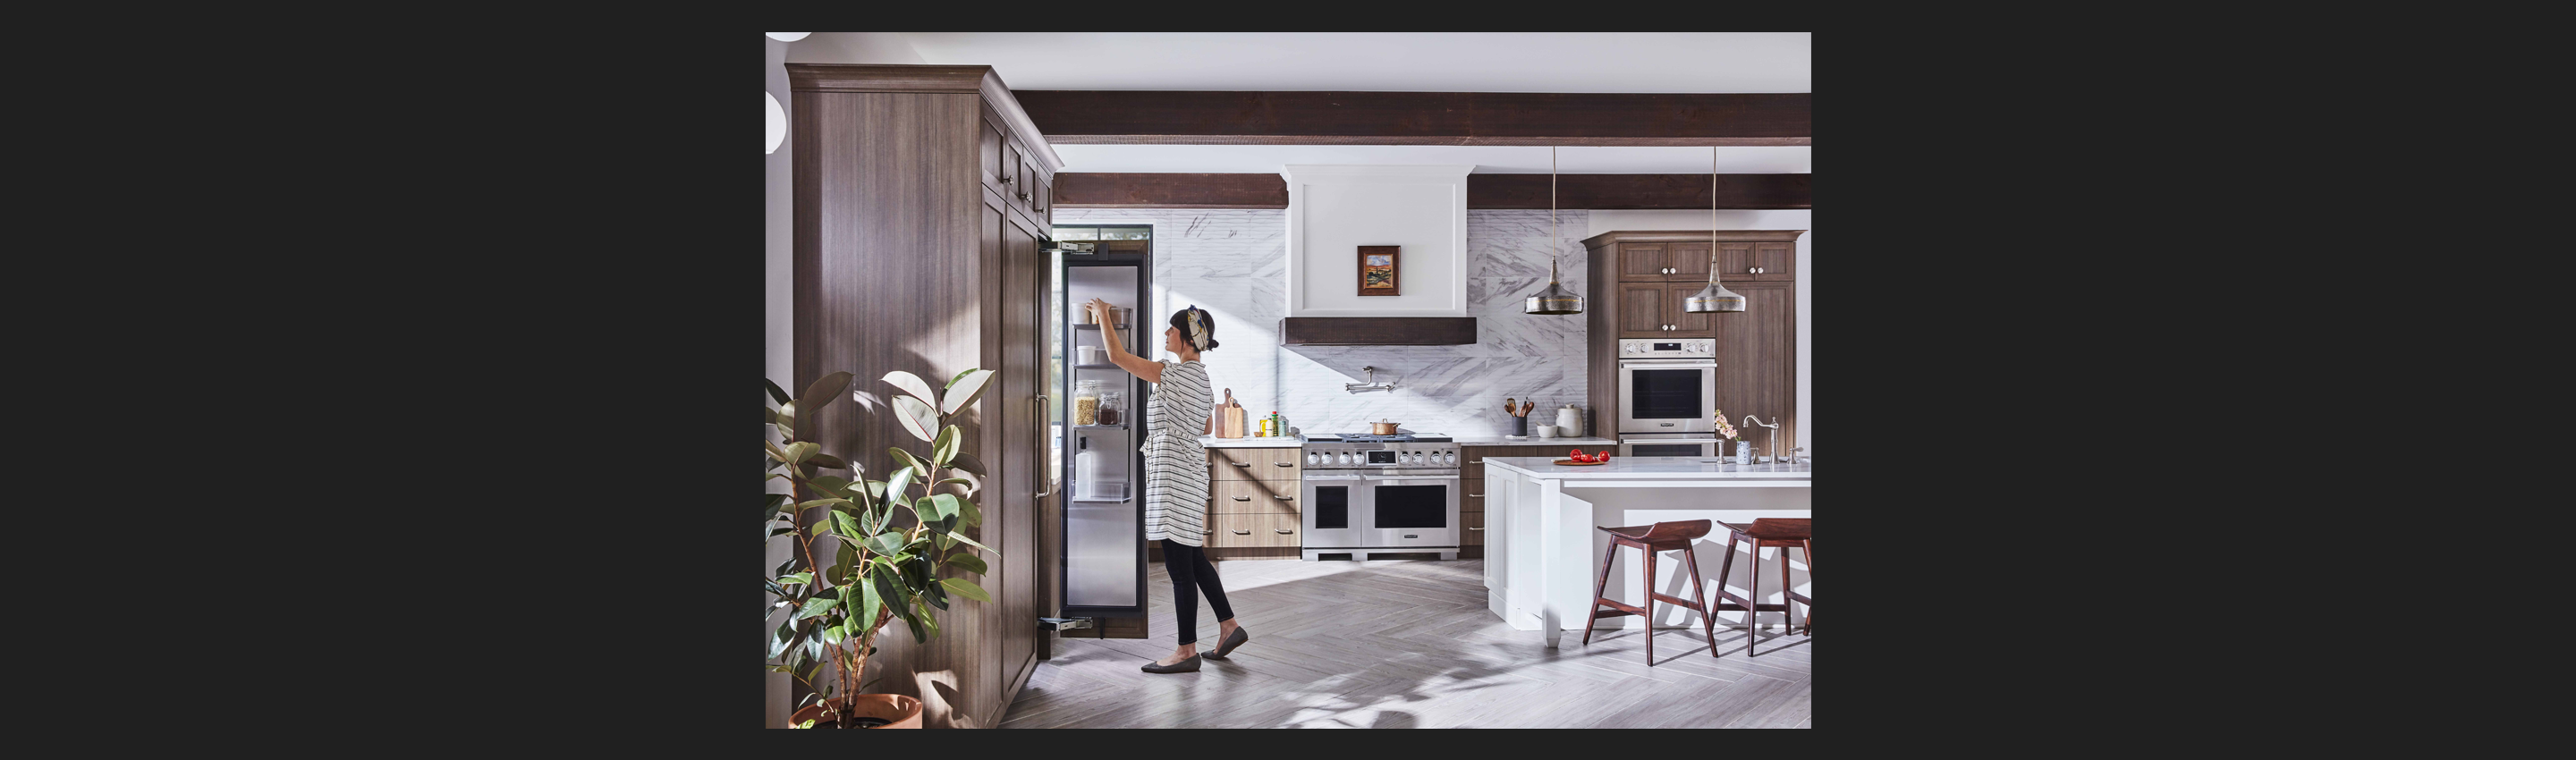 Signature Kitchen Suite | 30-inch Built-in Freezer Column